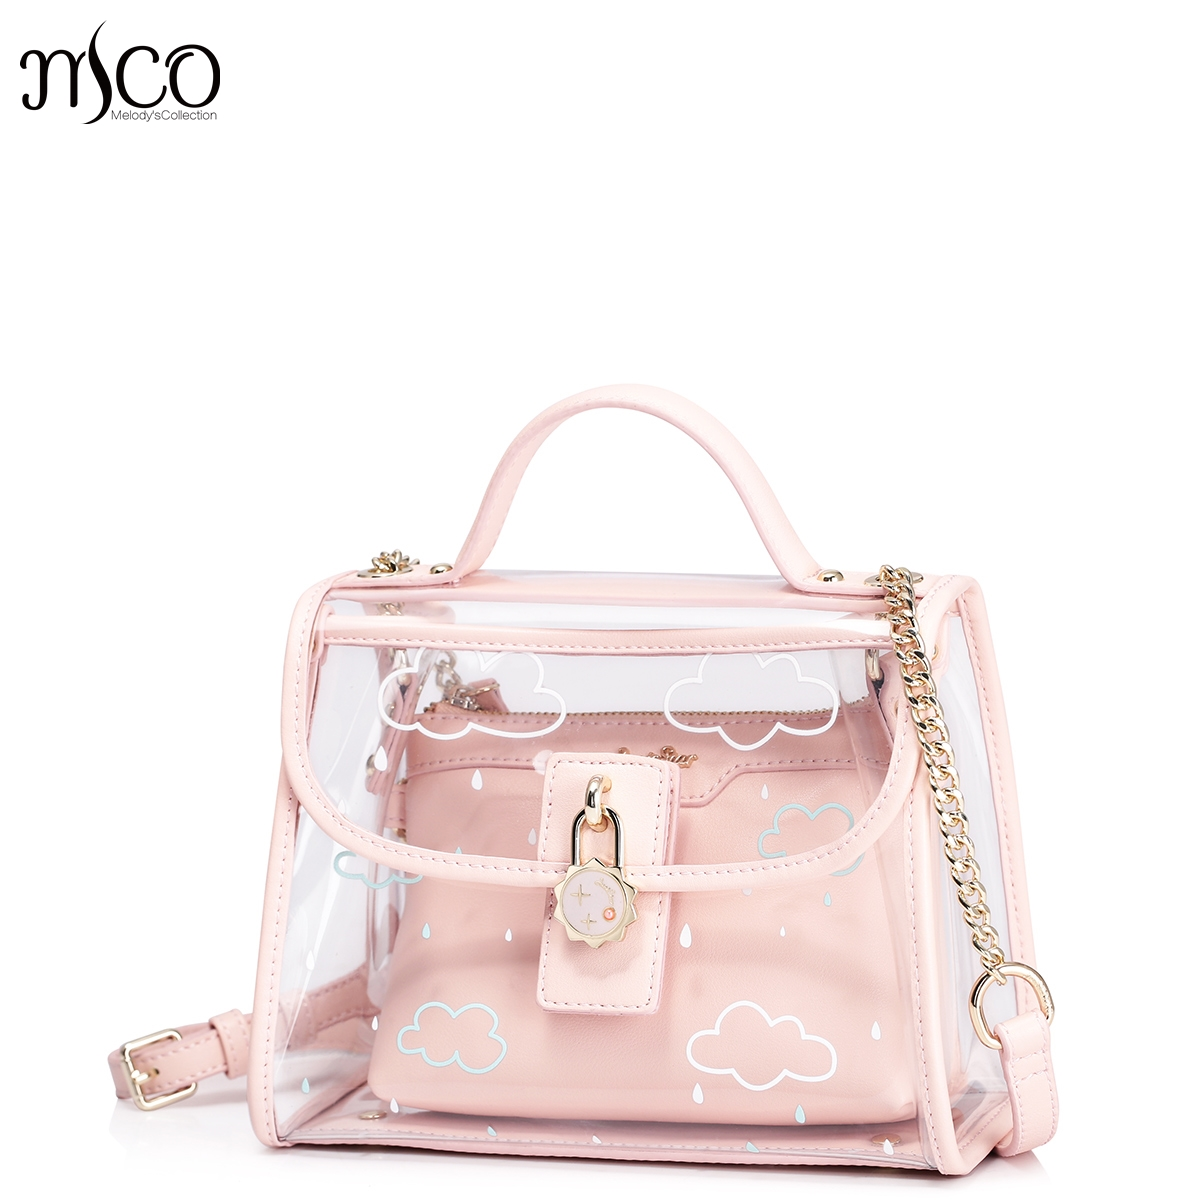 80a1728b0b 2017 Summer Pink Women Composite Bag Set For Beach PVC Clear Transparent  Bags Shoulder Small Ladies Clutch Messenger Handbag-in Shoulder Bags from  Luggage ...